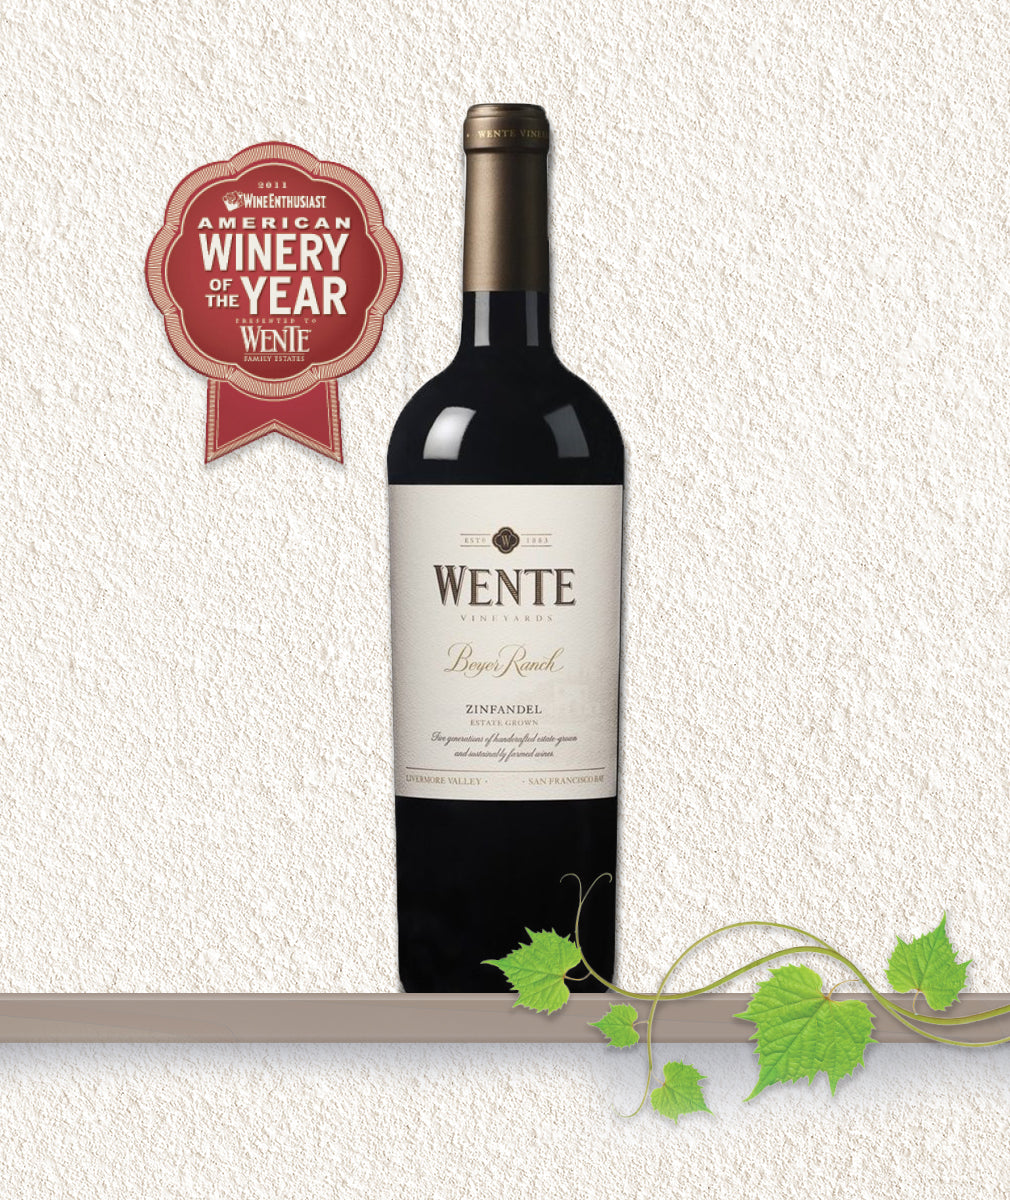 WENTE BEYER RANCH ZINFANDEL 2015